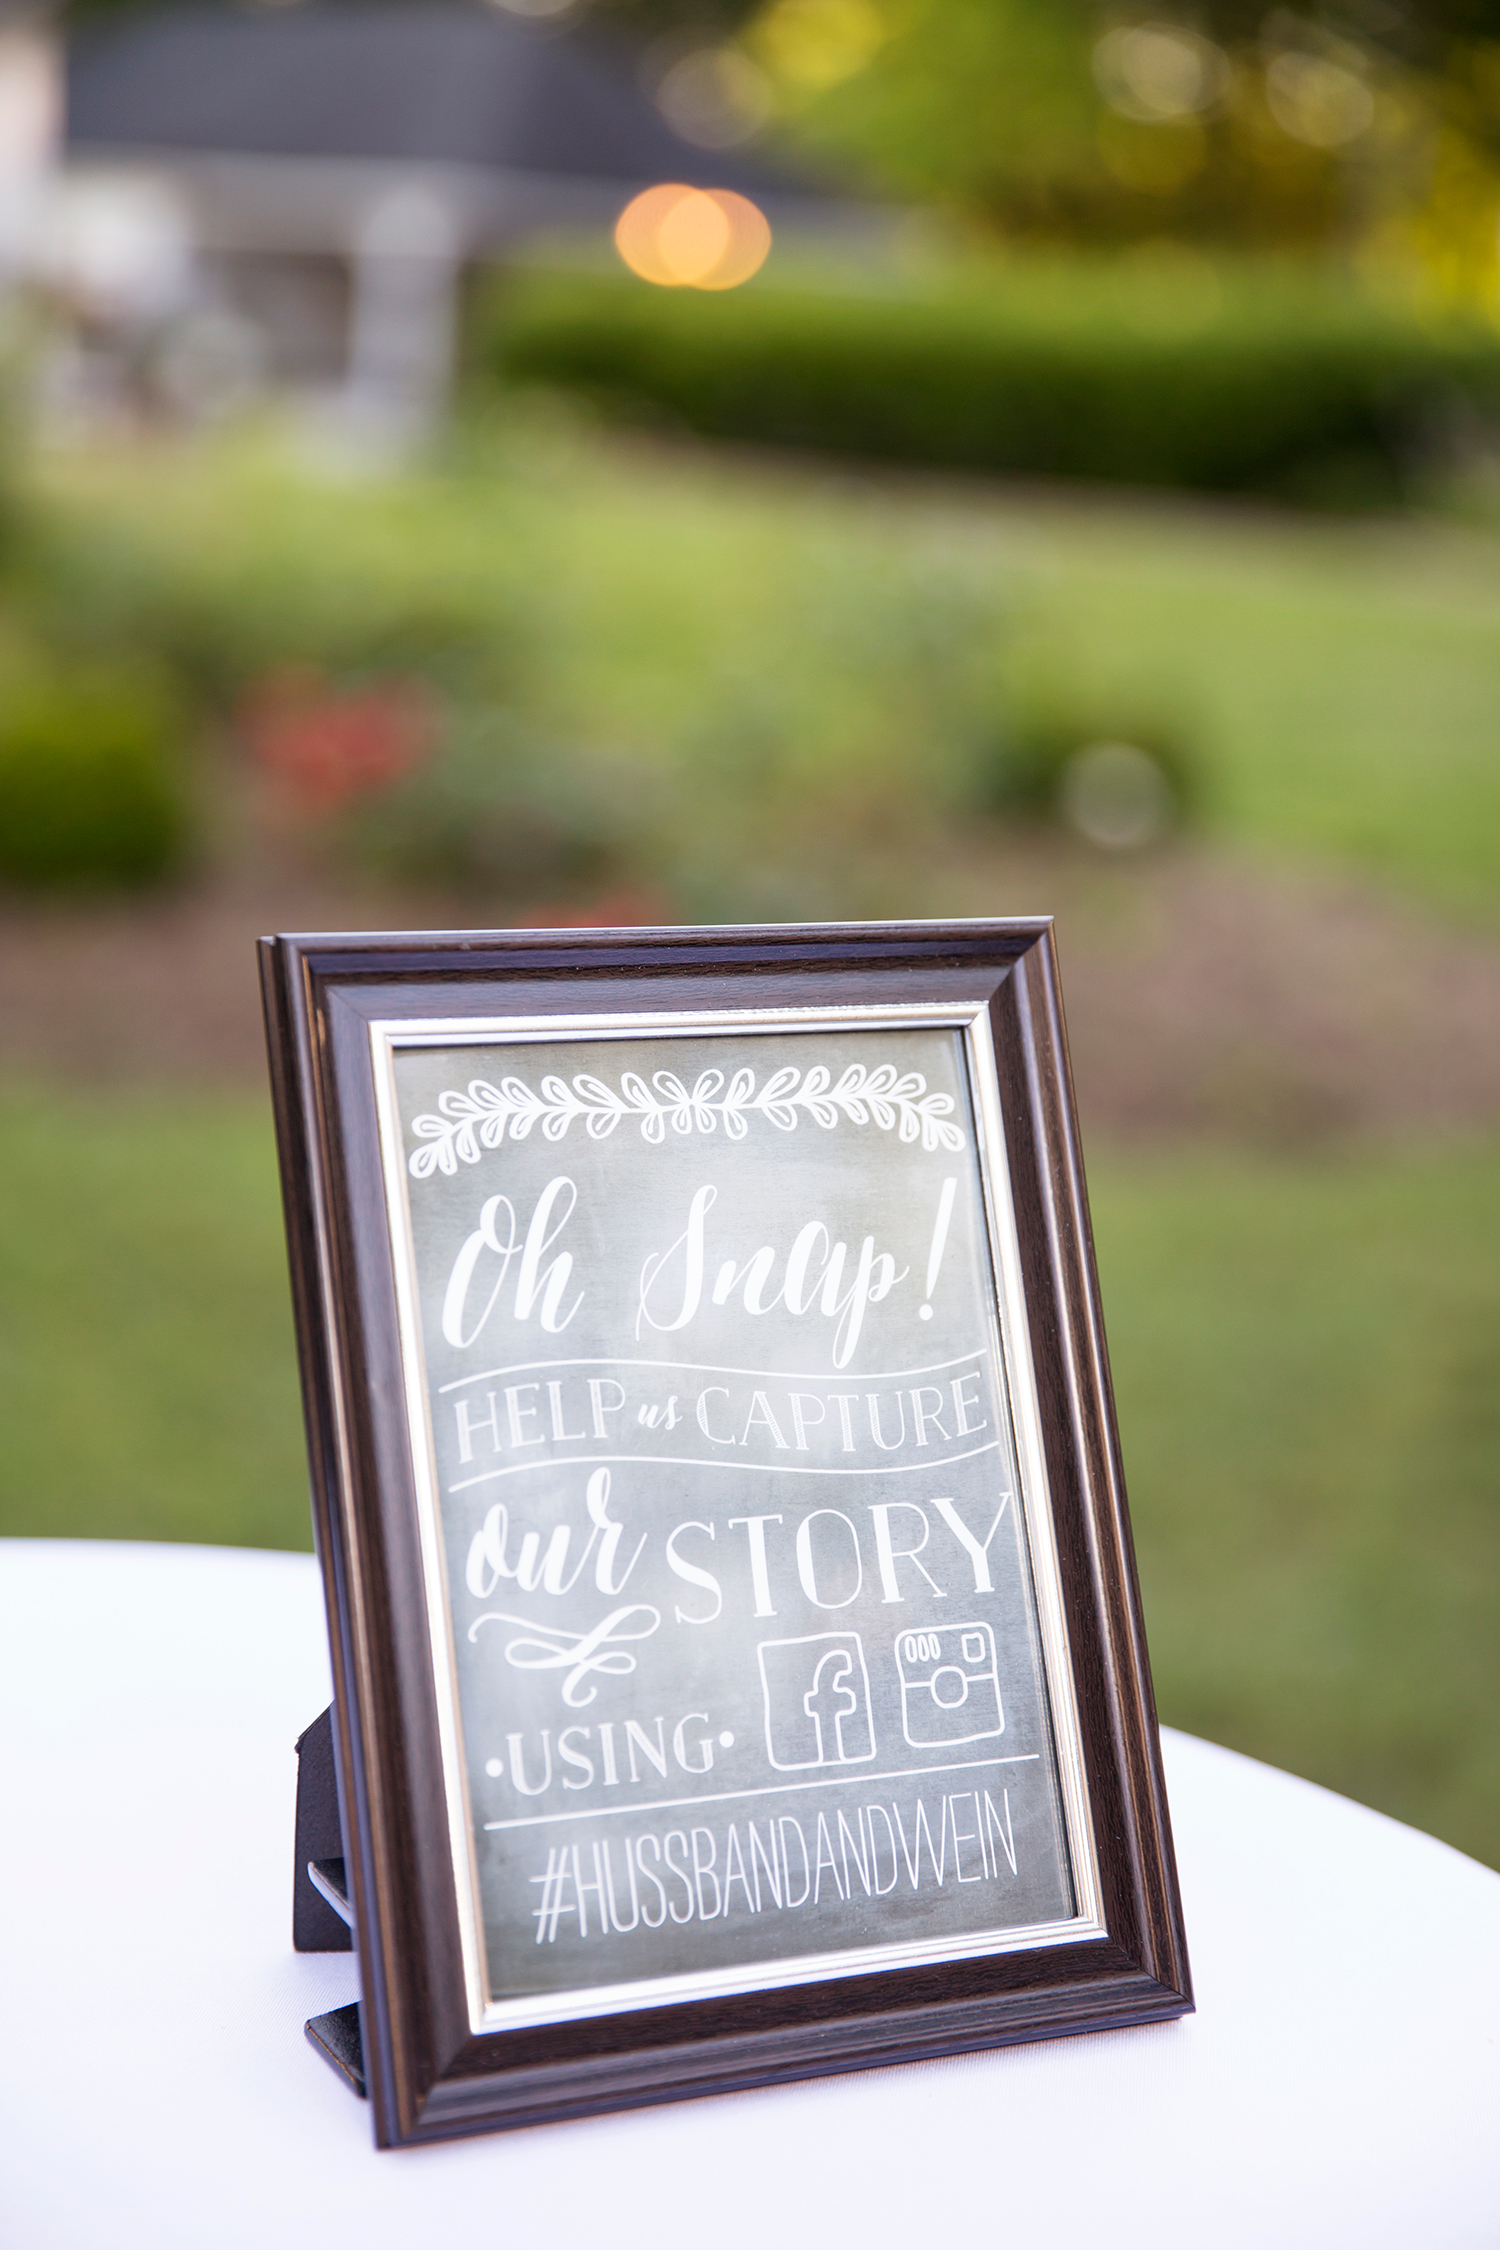 Summer Wedding at The Virginia Cliffe Inn - Image Property of www.j-dphoto.com